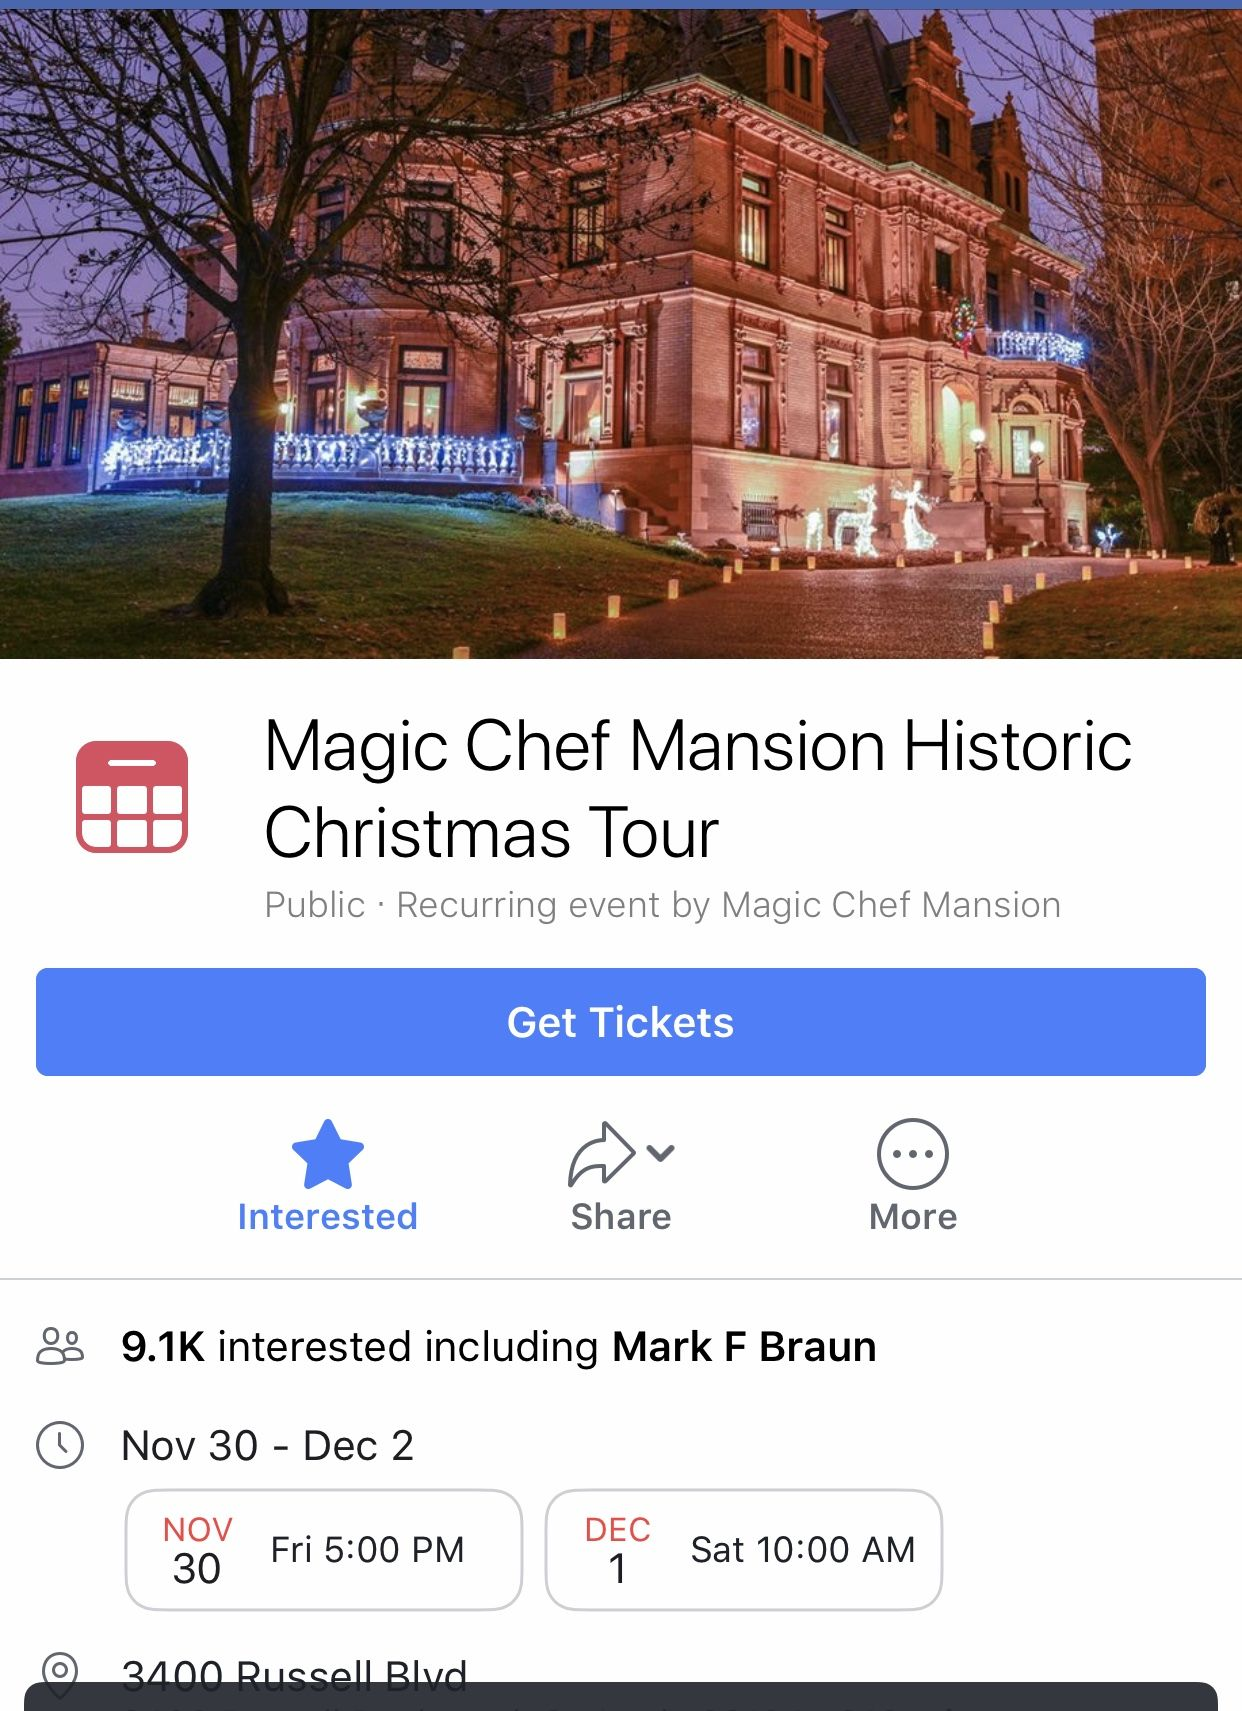 Magic Chef Mansion Christmas Tour 2020 Pin by Jeanne Guidry on Christmas in 2020 | Christmas tours